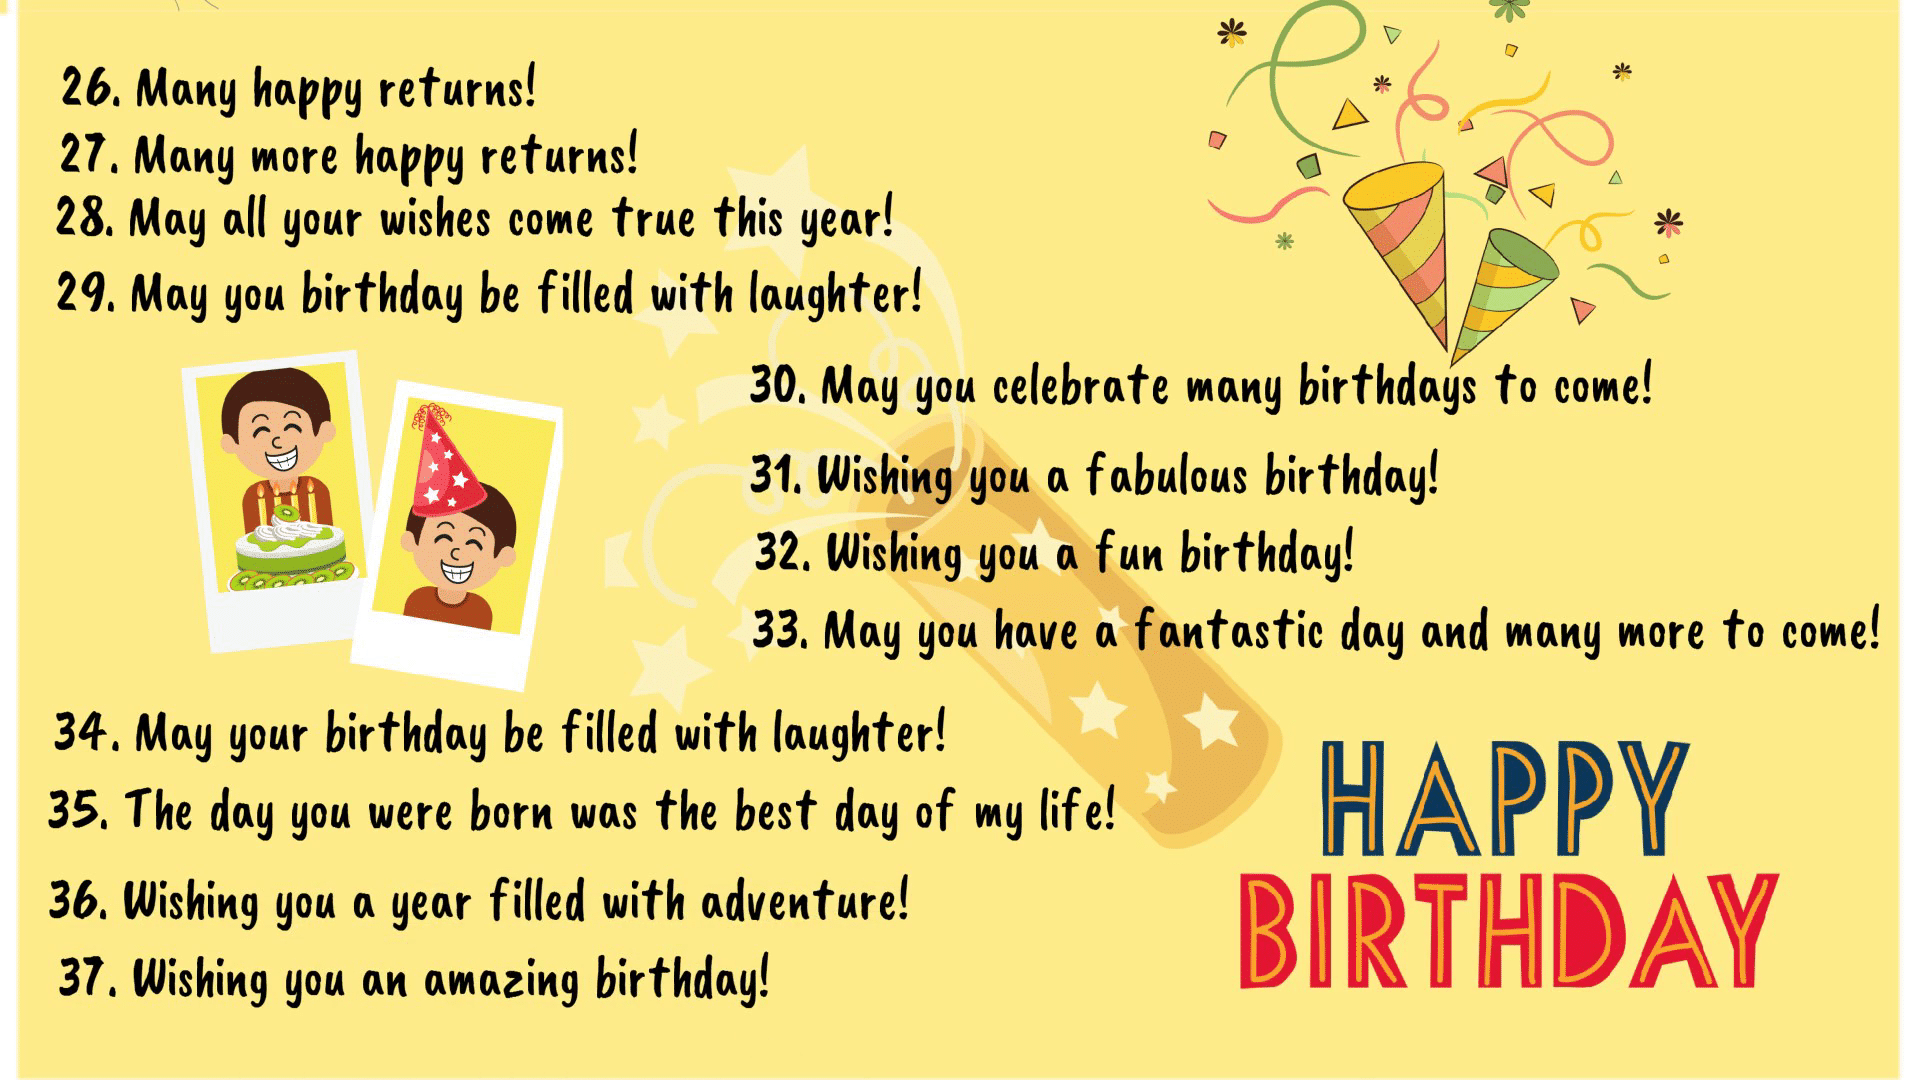 Birthday Wishes: 40+ Best Happy Birthday Wishes to Friends & Others! 3